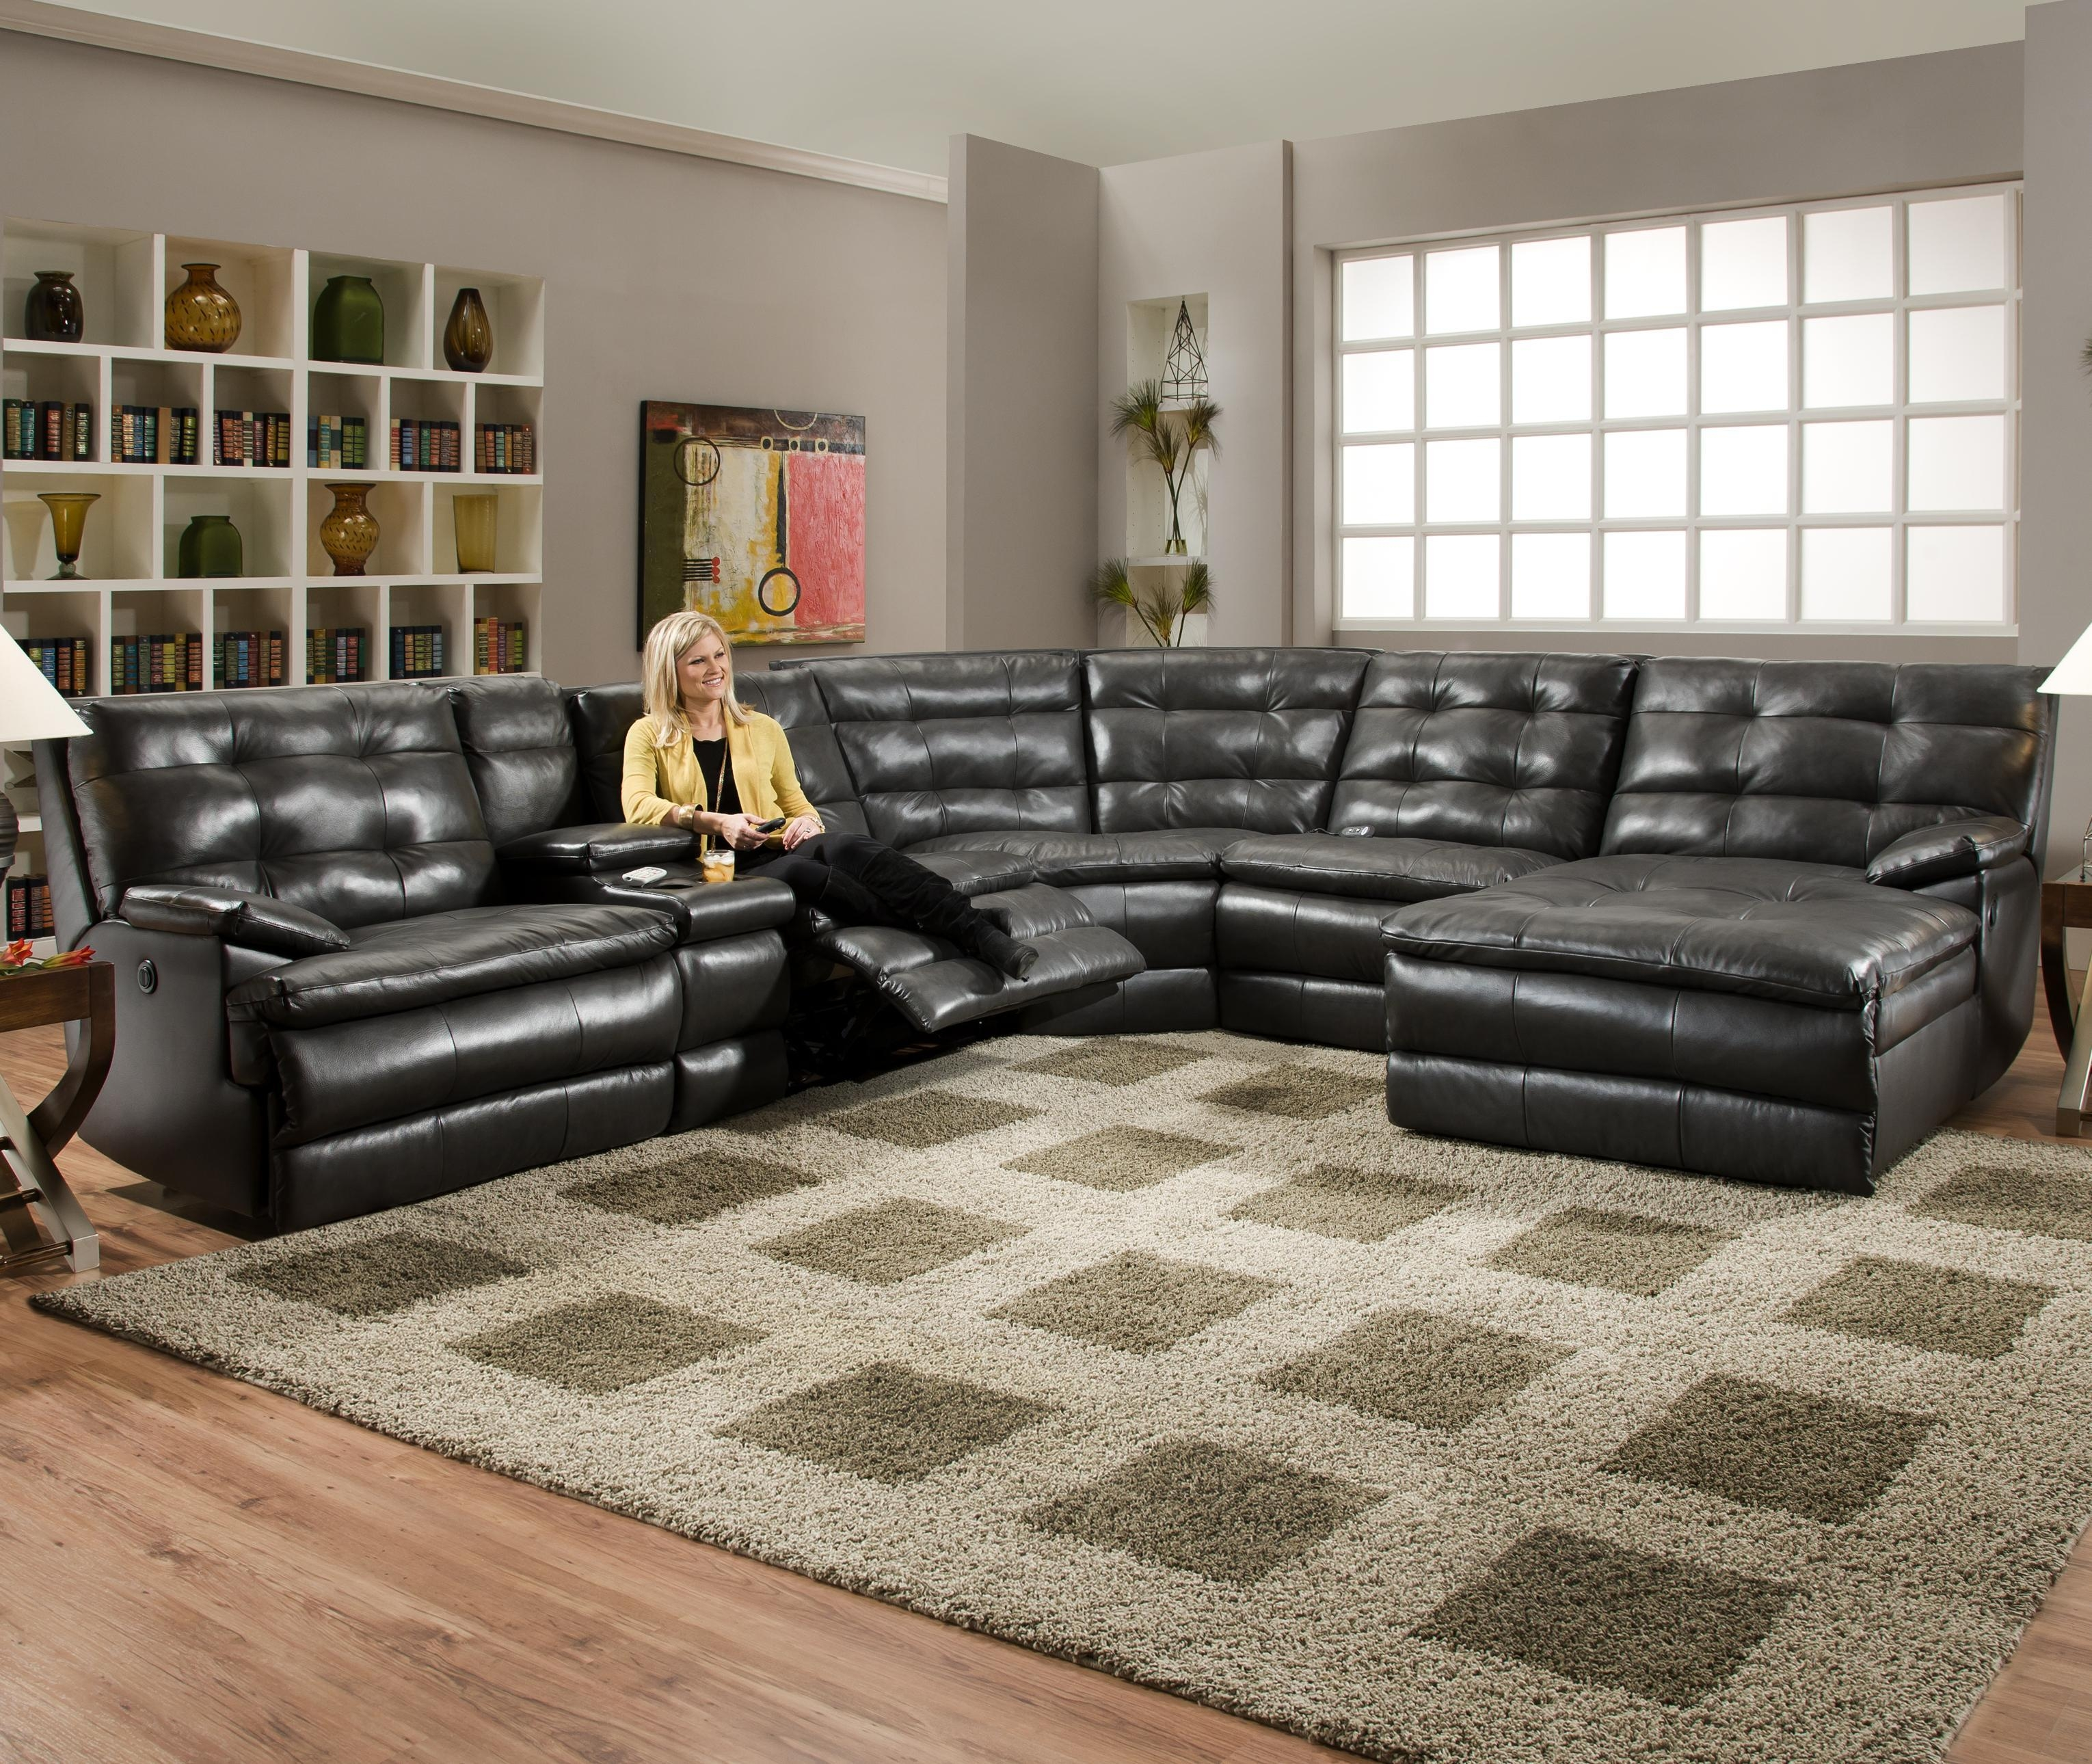 22 Ideas Of Recliner Sectional Sofas Sofa Ideas